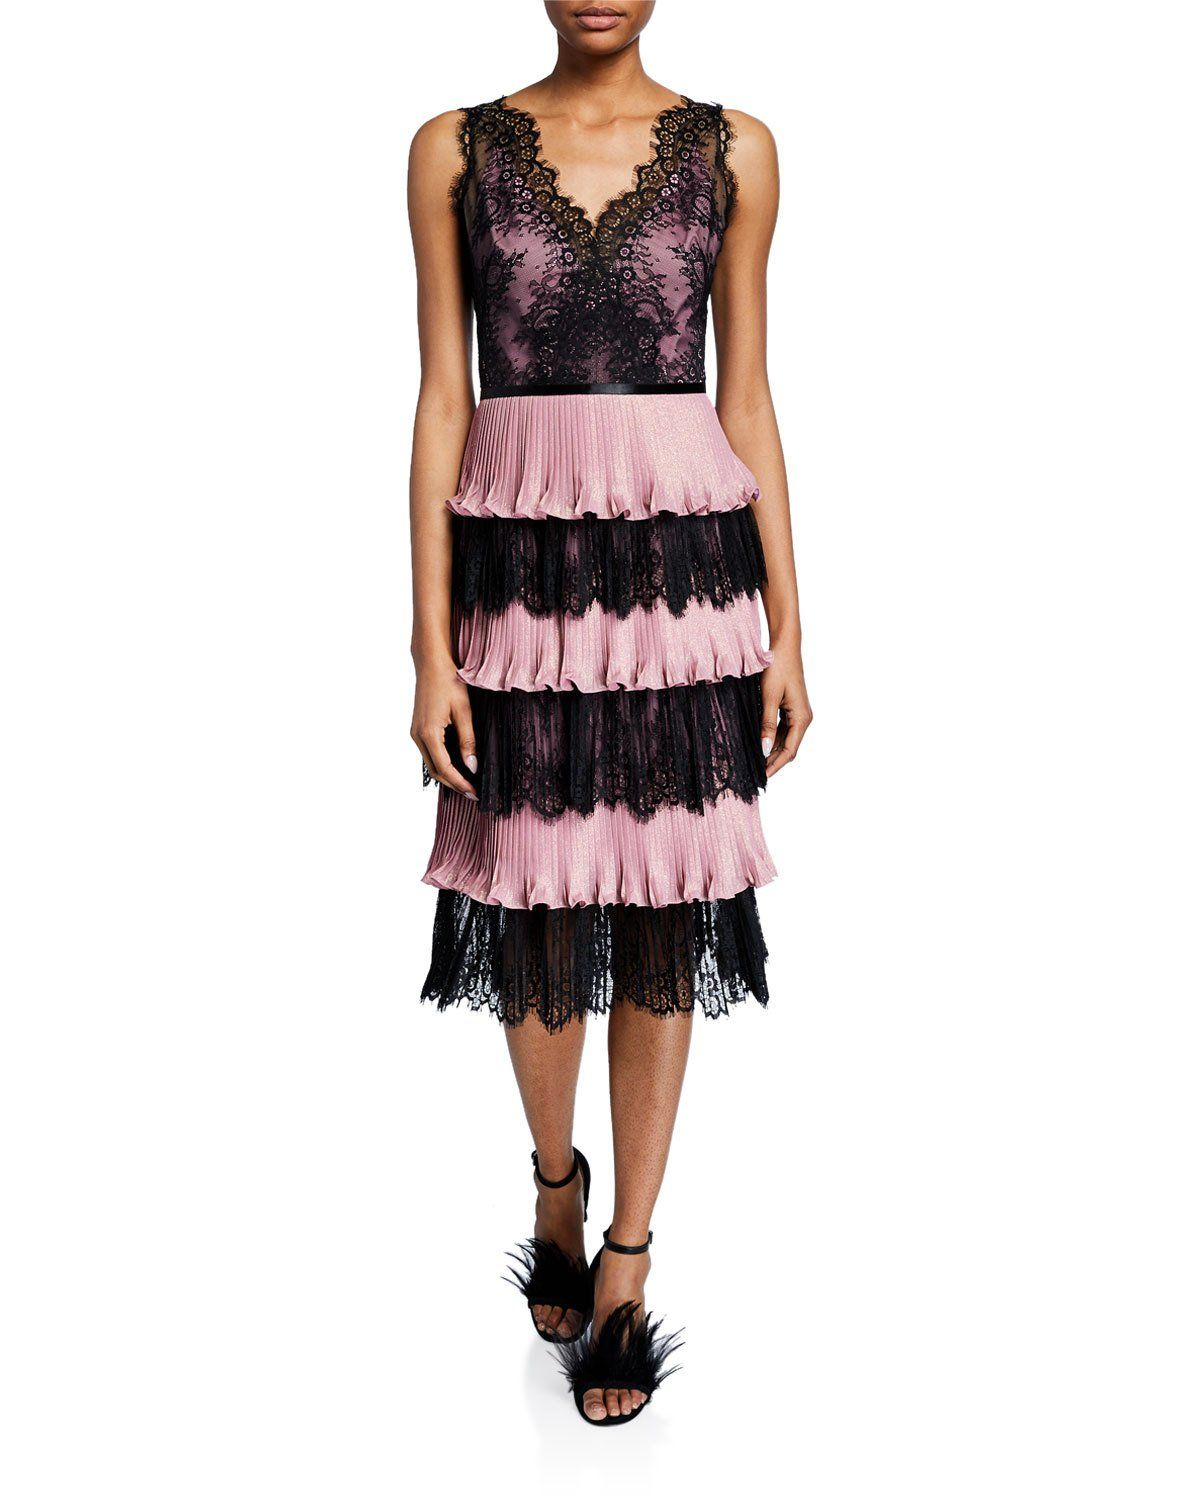 d07bfdc388 Marchesa Notte V-Neck Sleeveless Tiered Scallop Lace & Pleated Lame  Cocktail Dress | Neiman